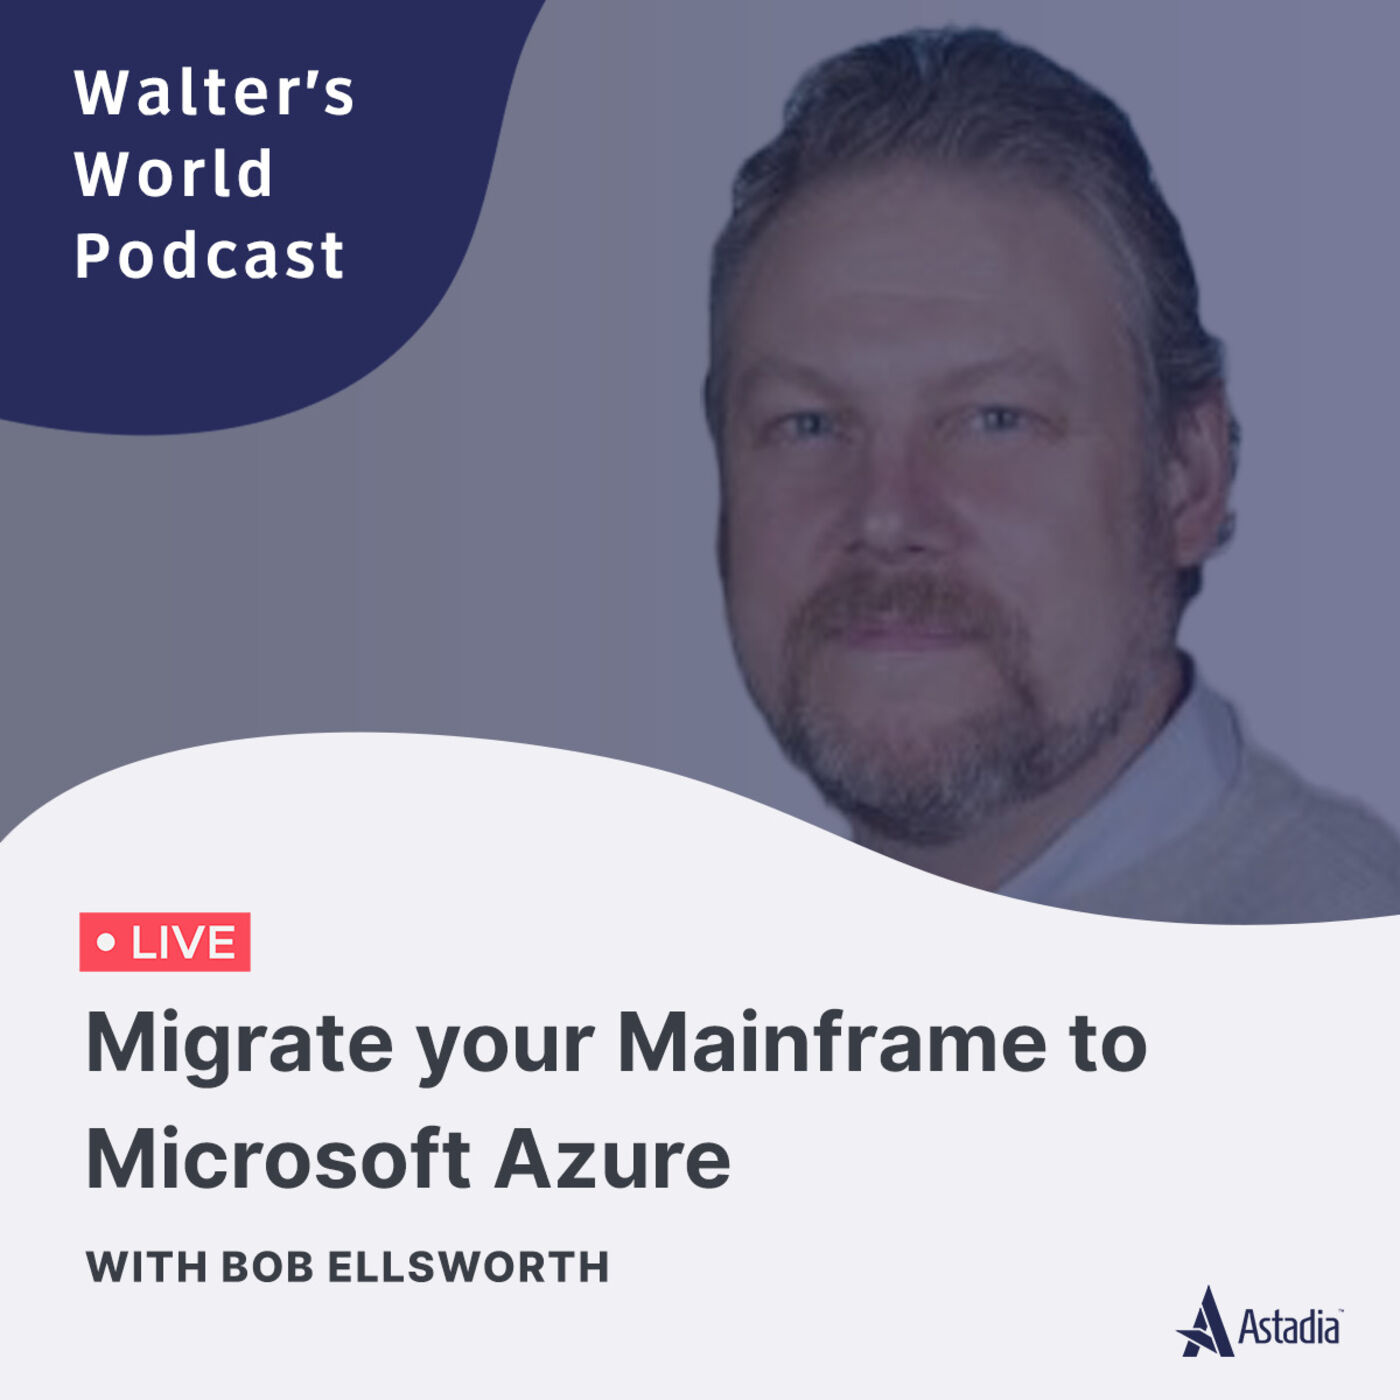 Migrate your Mainframe to Microsoft Azure with Bob Ellsworth